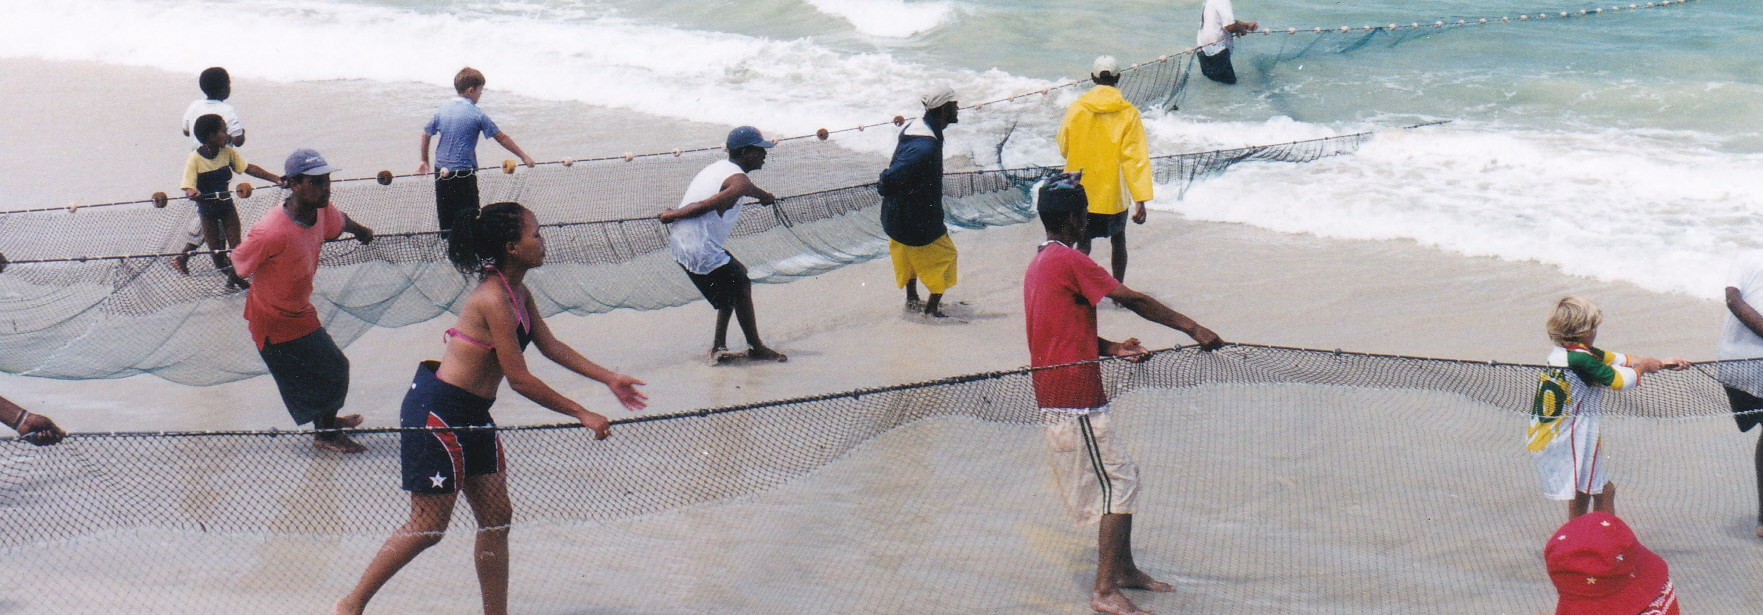 The gallant dragnet fishers in Fish Hoek – saving swimmers from shark attacks many times